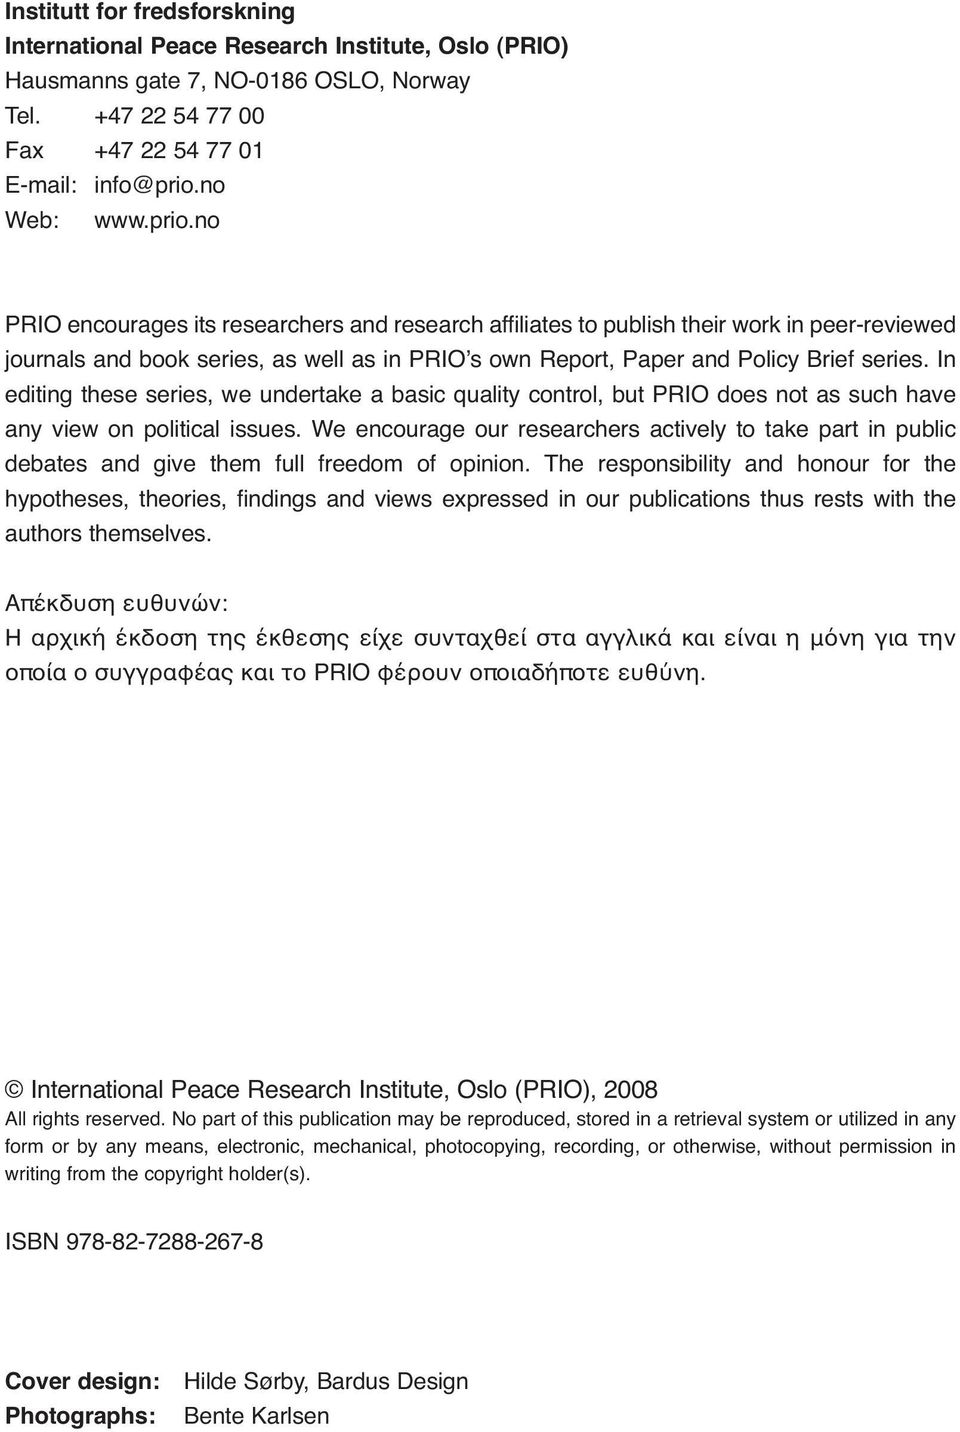 no PRIO encourages its researchers and research affiliates to publish their work in peer-reviewed journals and book series, as well as in PRIO's own Report, Paper and Policy Brief series.